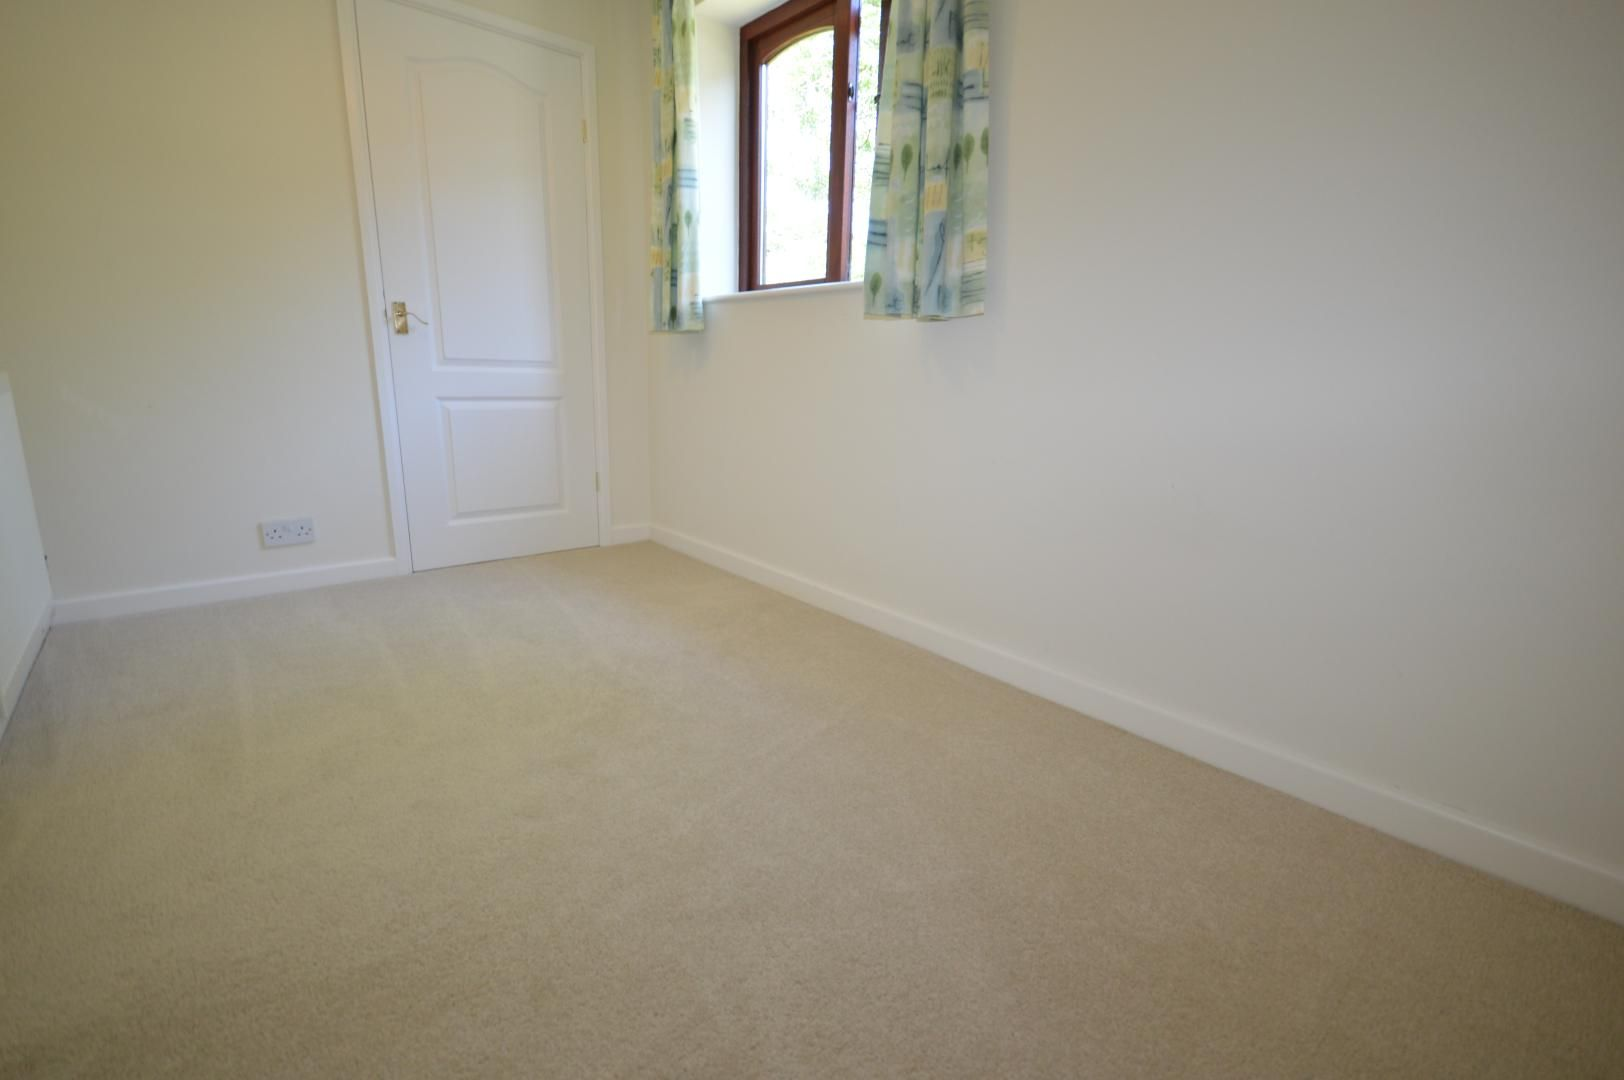 3 bed house to rent 10